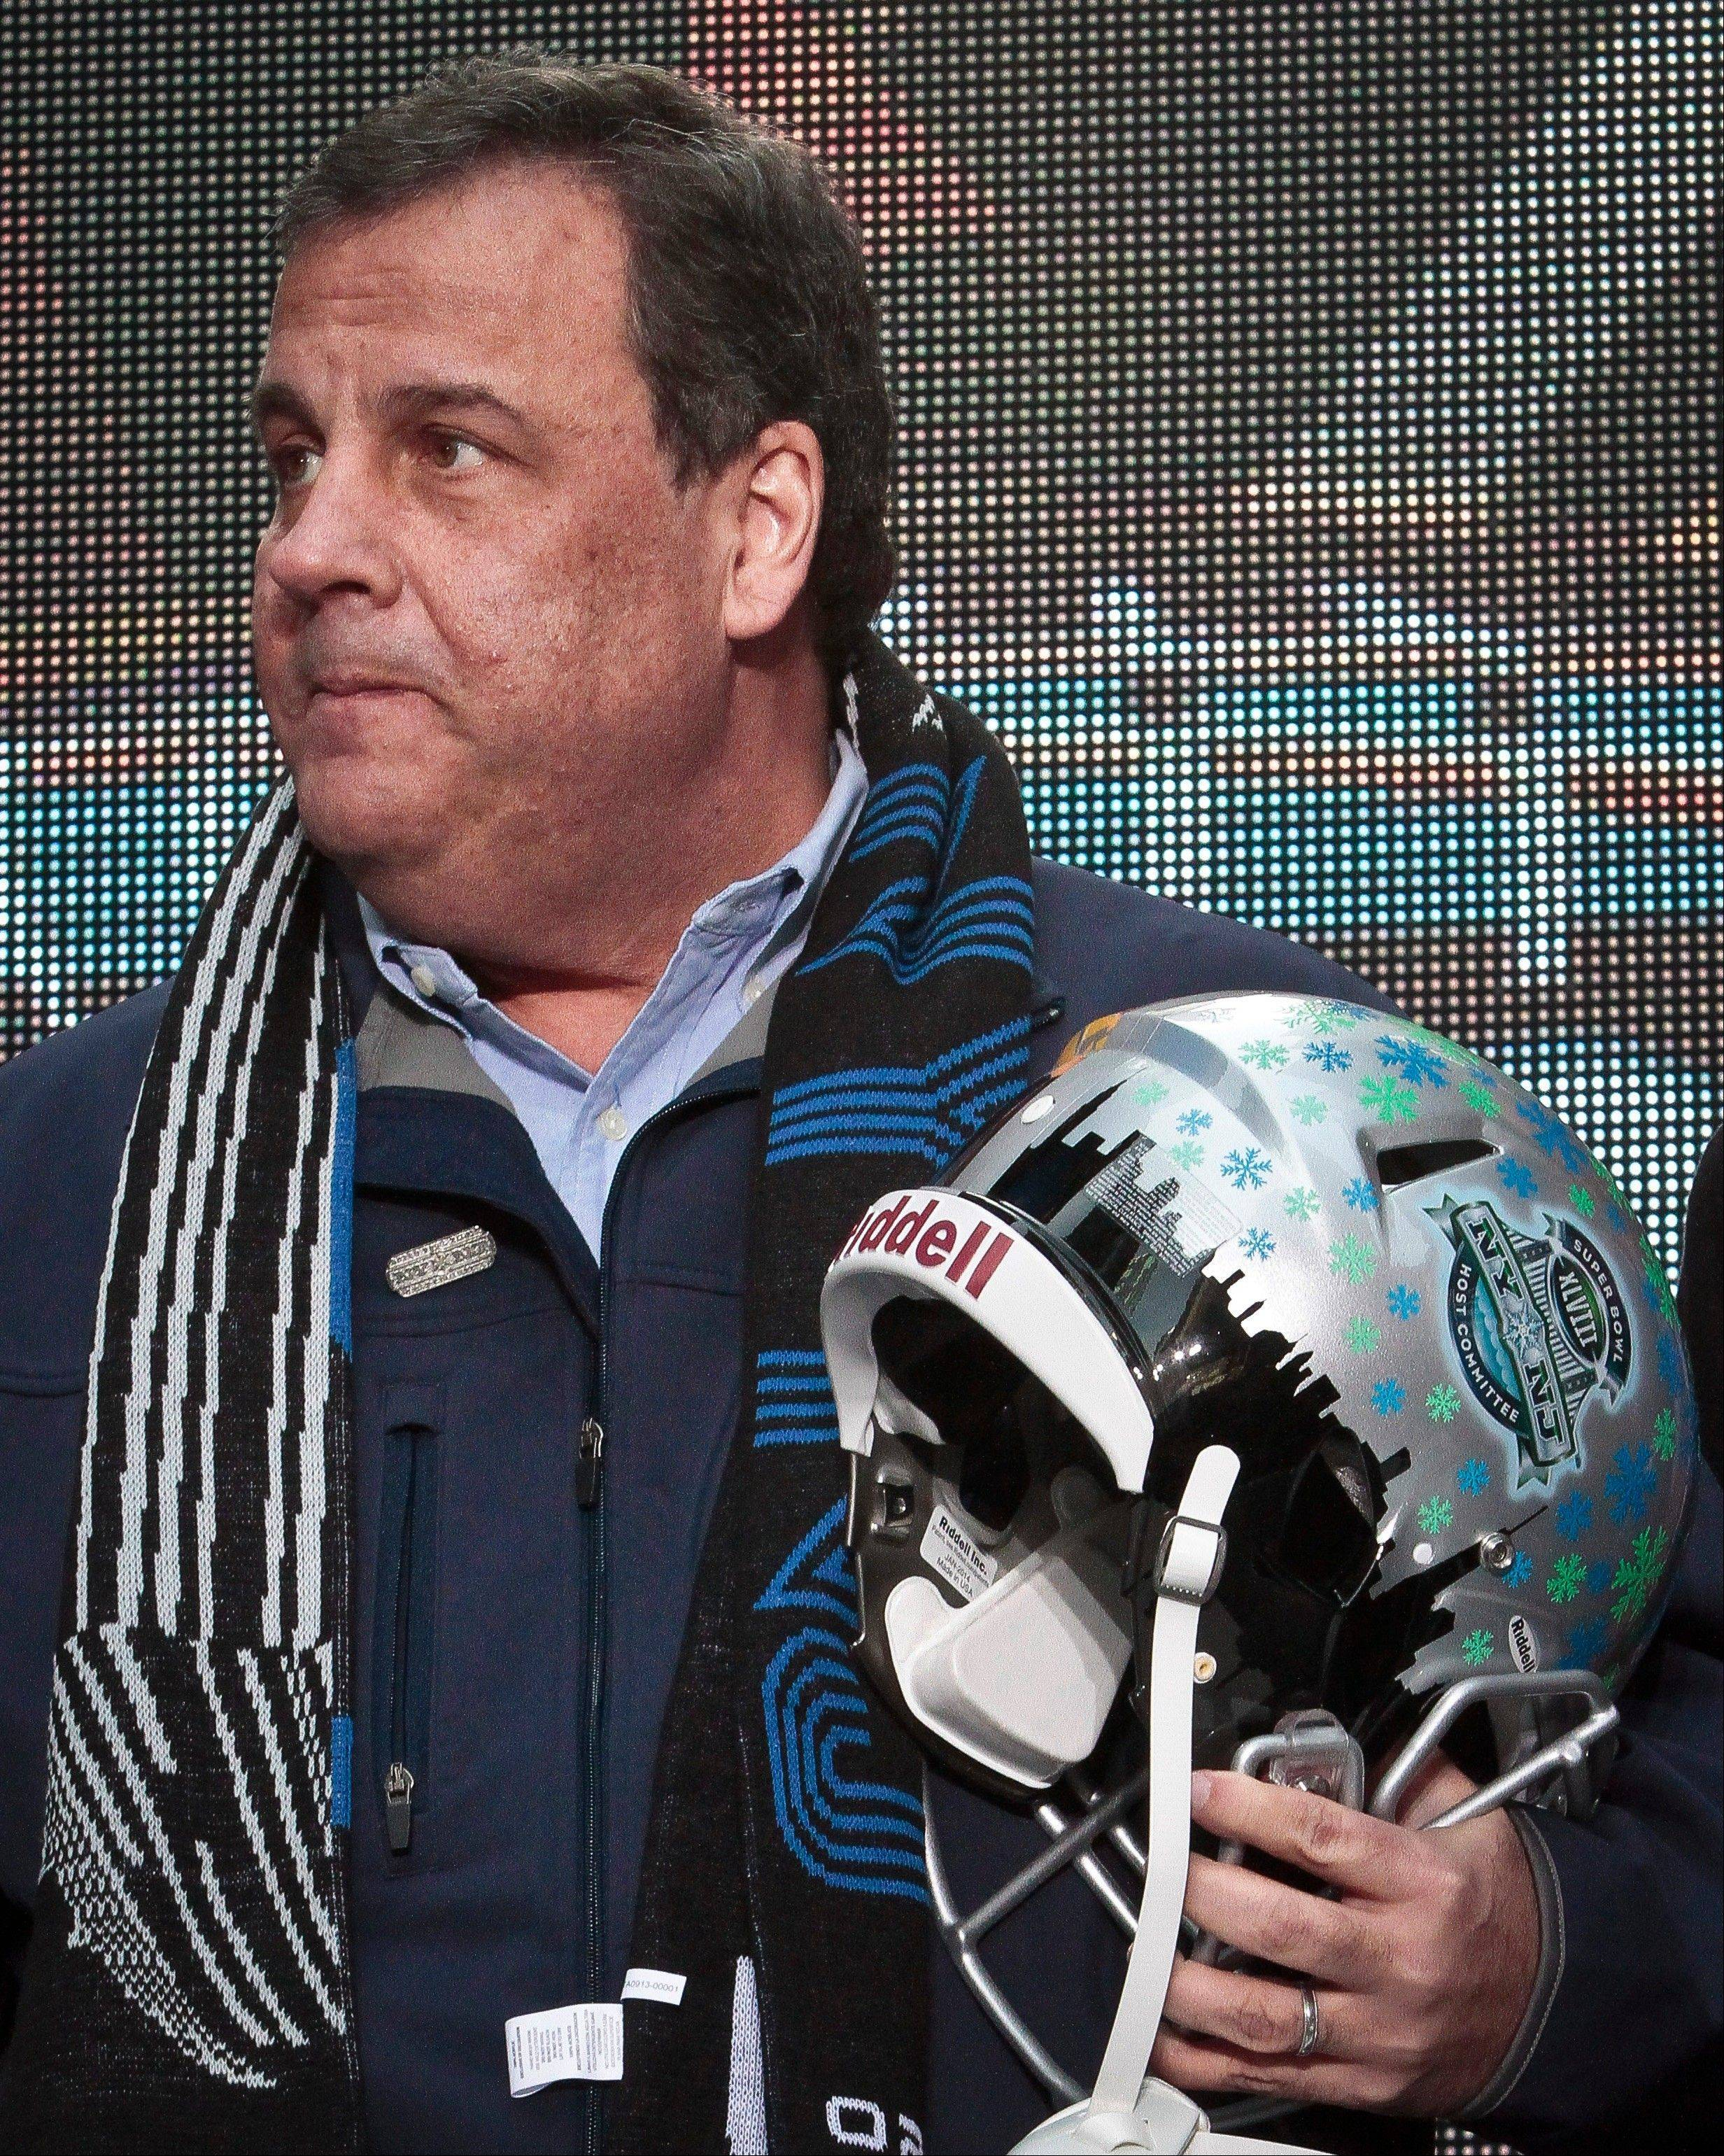 New Jersey Gov. Chris Christie holds a souvenir football helmet as he leaves after a ceremony to pass official hosting duties of next year�s Super Bowl to representatives from Arizona on Saturday in New York. Fellow Republicans are assessing the damage of new allegations that Gov. Christie knew about a traffic-blocking operation orchestrated by top aides.